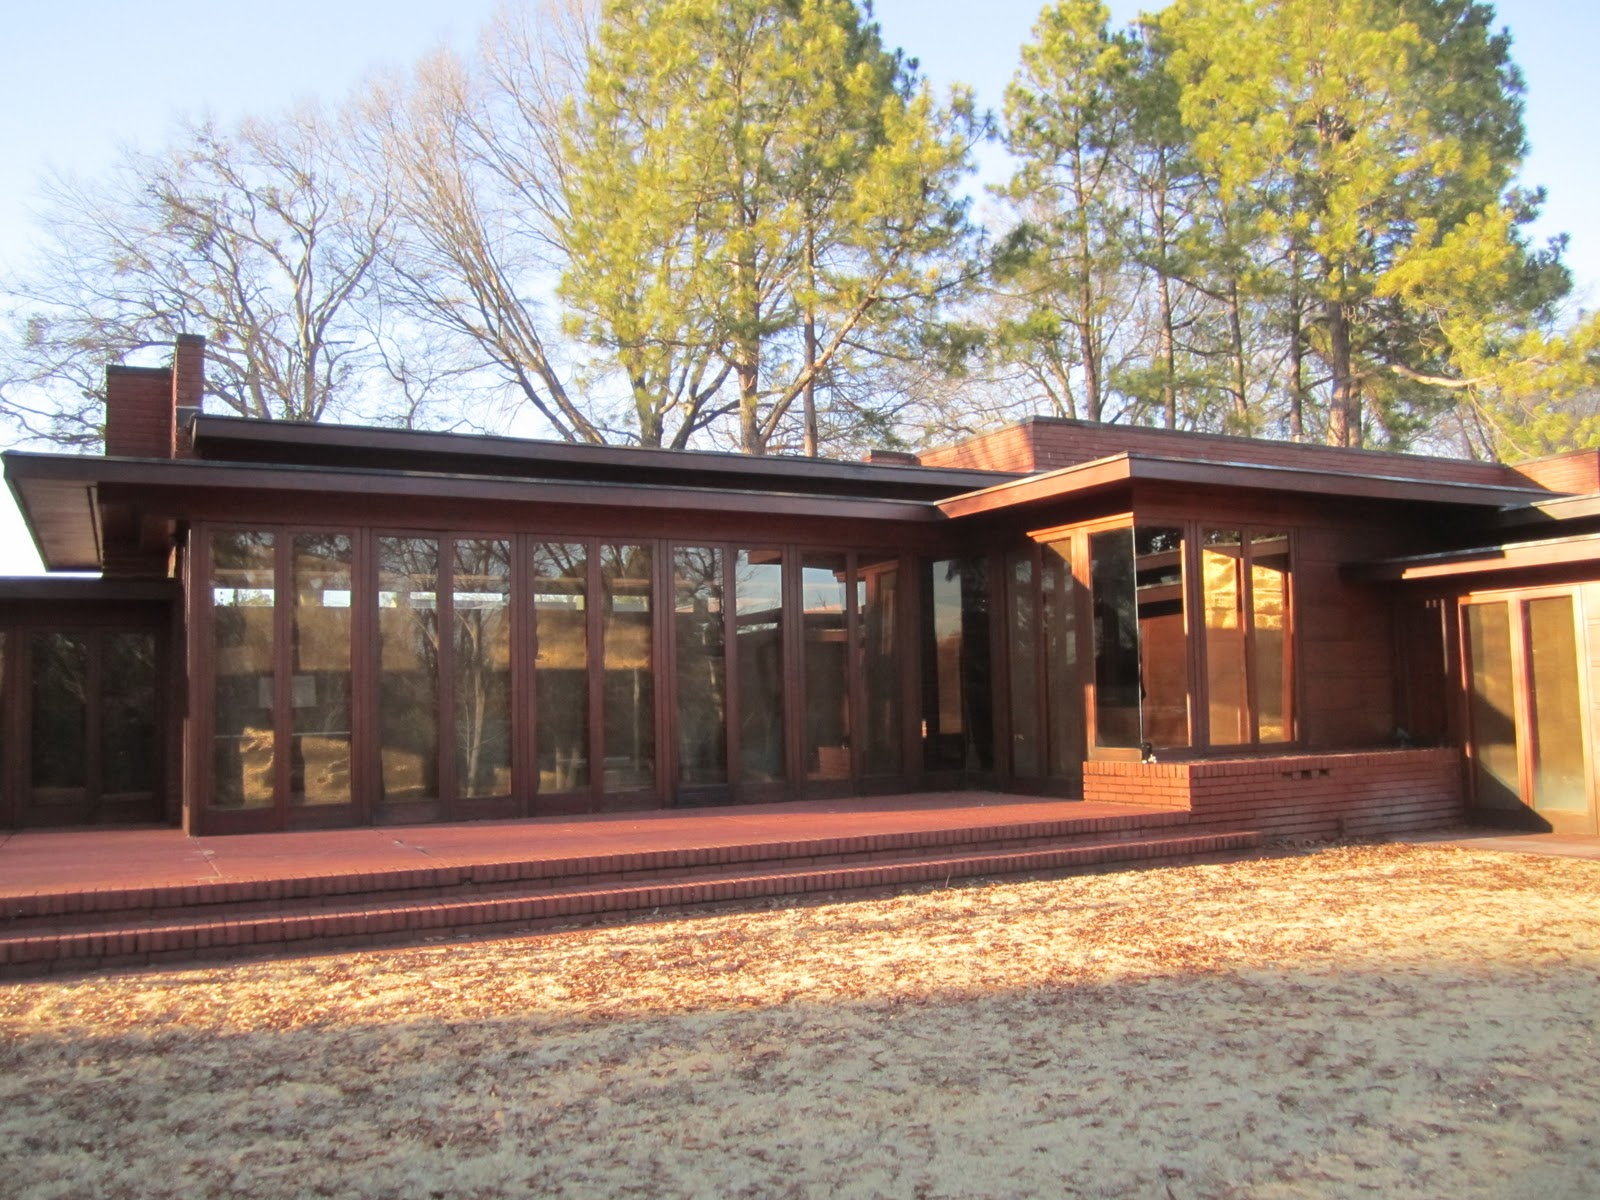 Where 39 S Elsie A Visit To The Only Frank Lloyd Wright House In Alabama The Rosenbaum Home